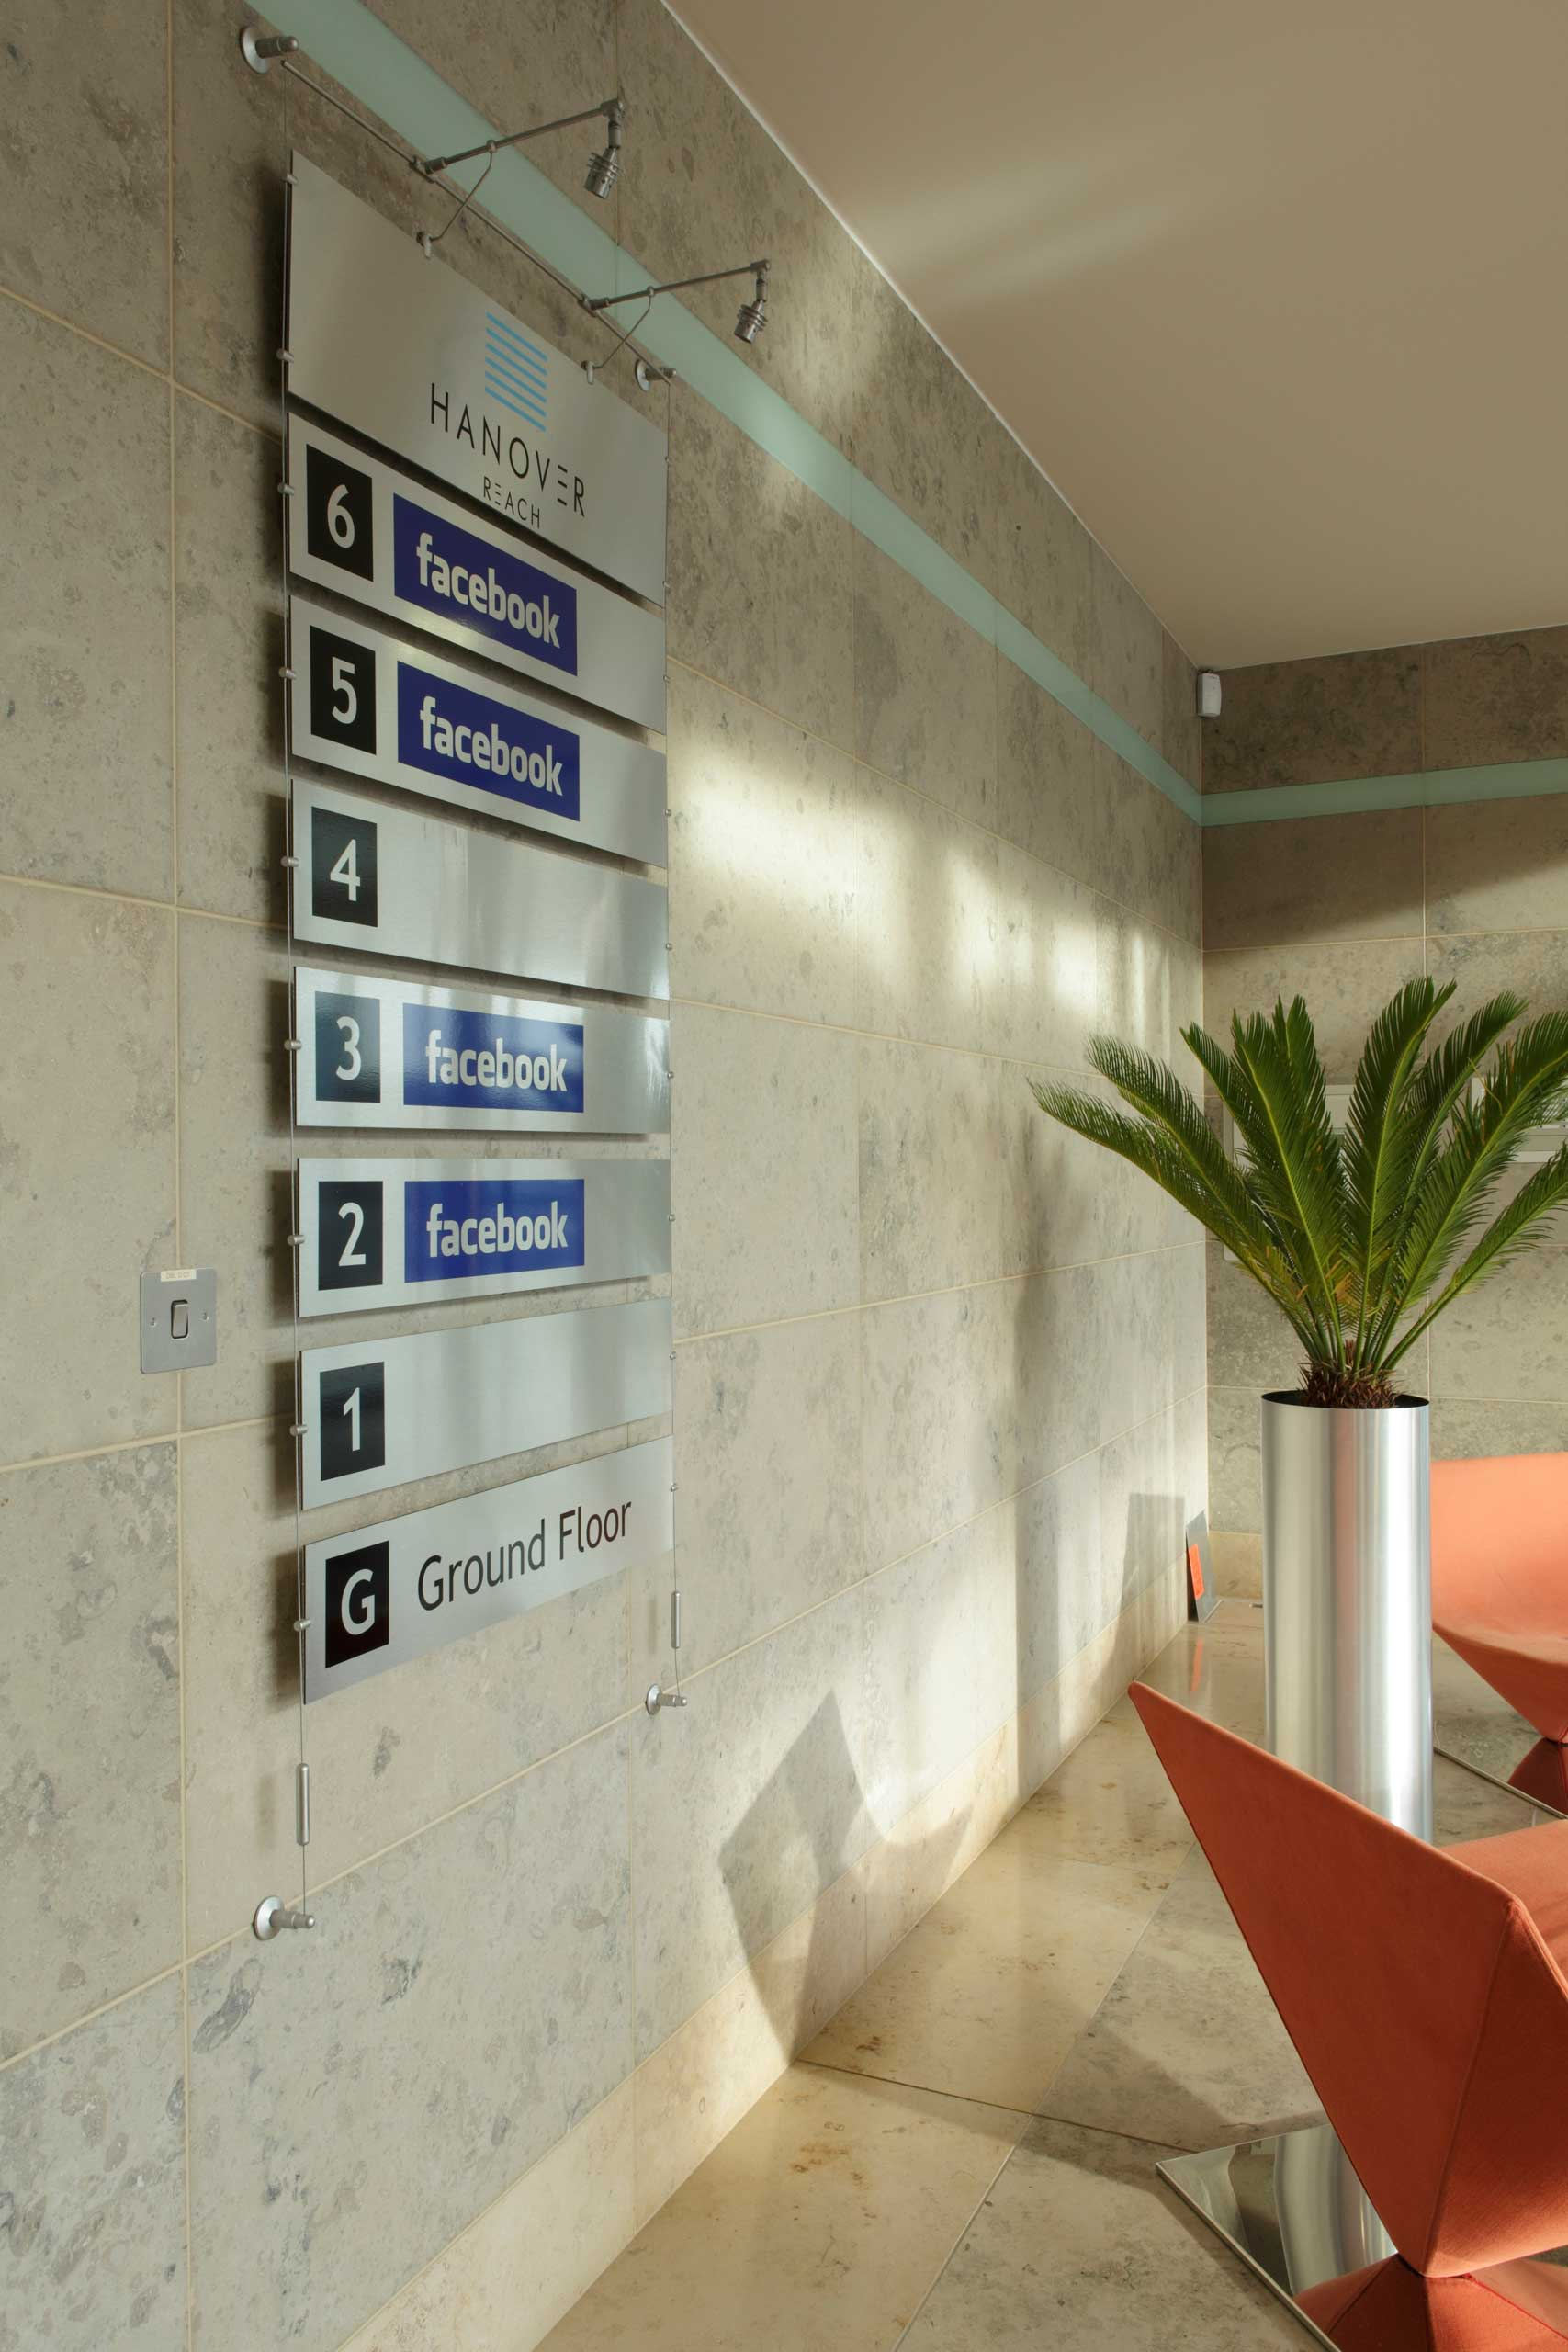 Facebook offices in Dublin, Ireland in 2010.